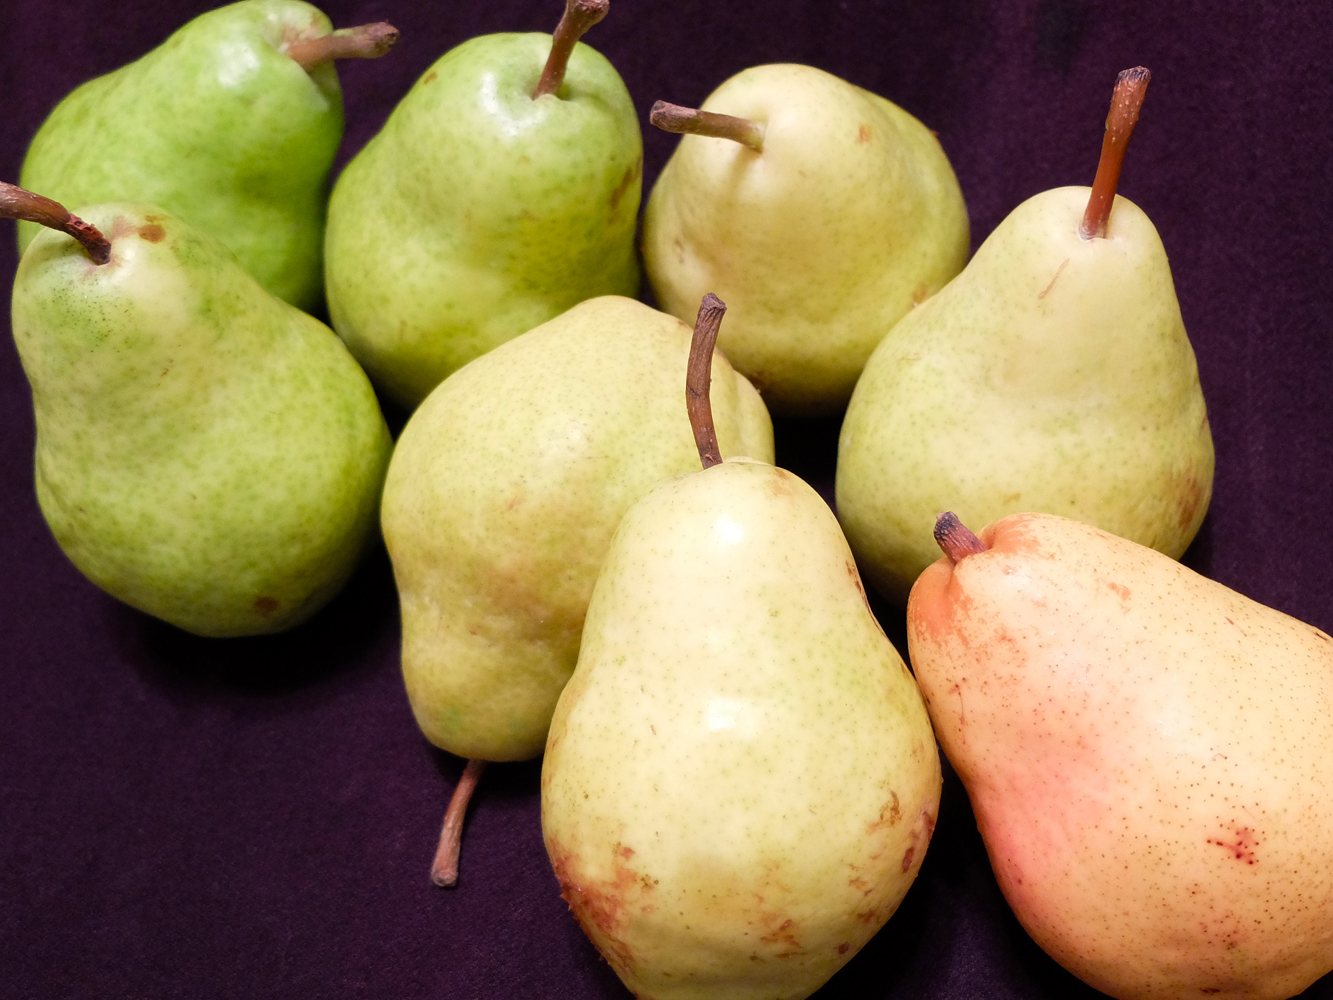 Bartlet pears, in varying stages of ripeness.